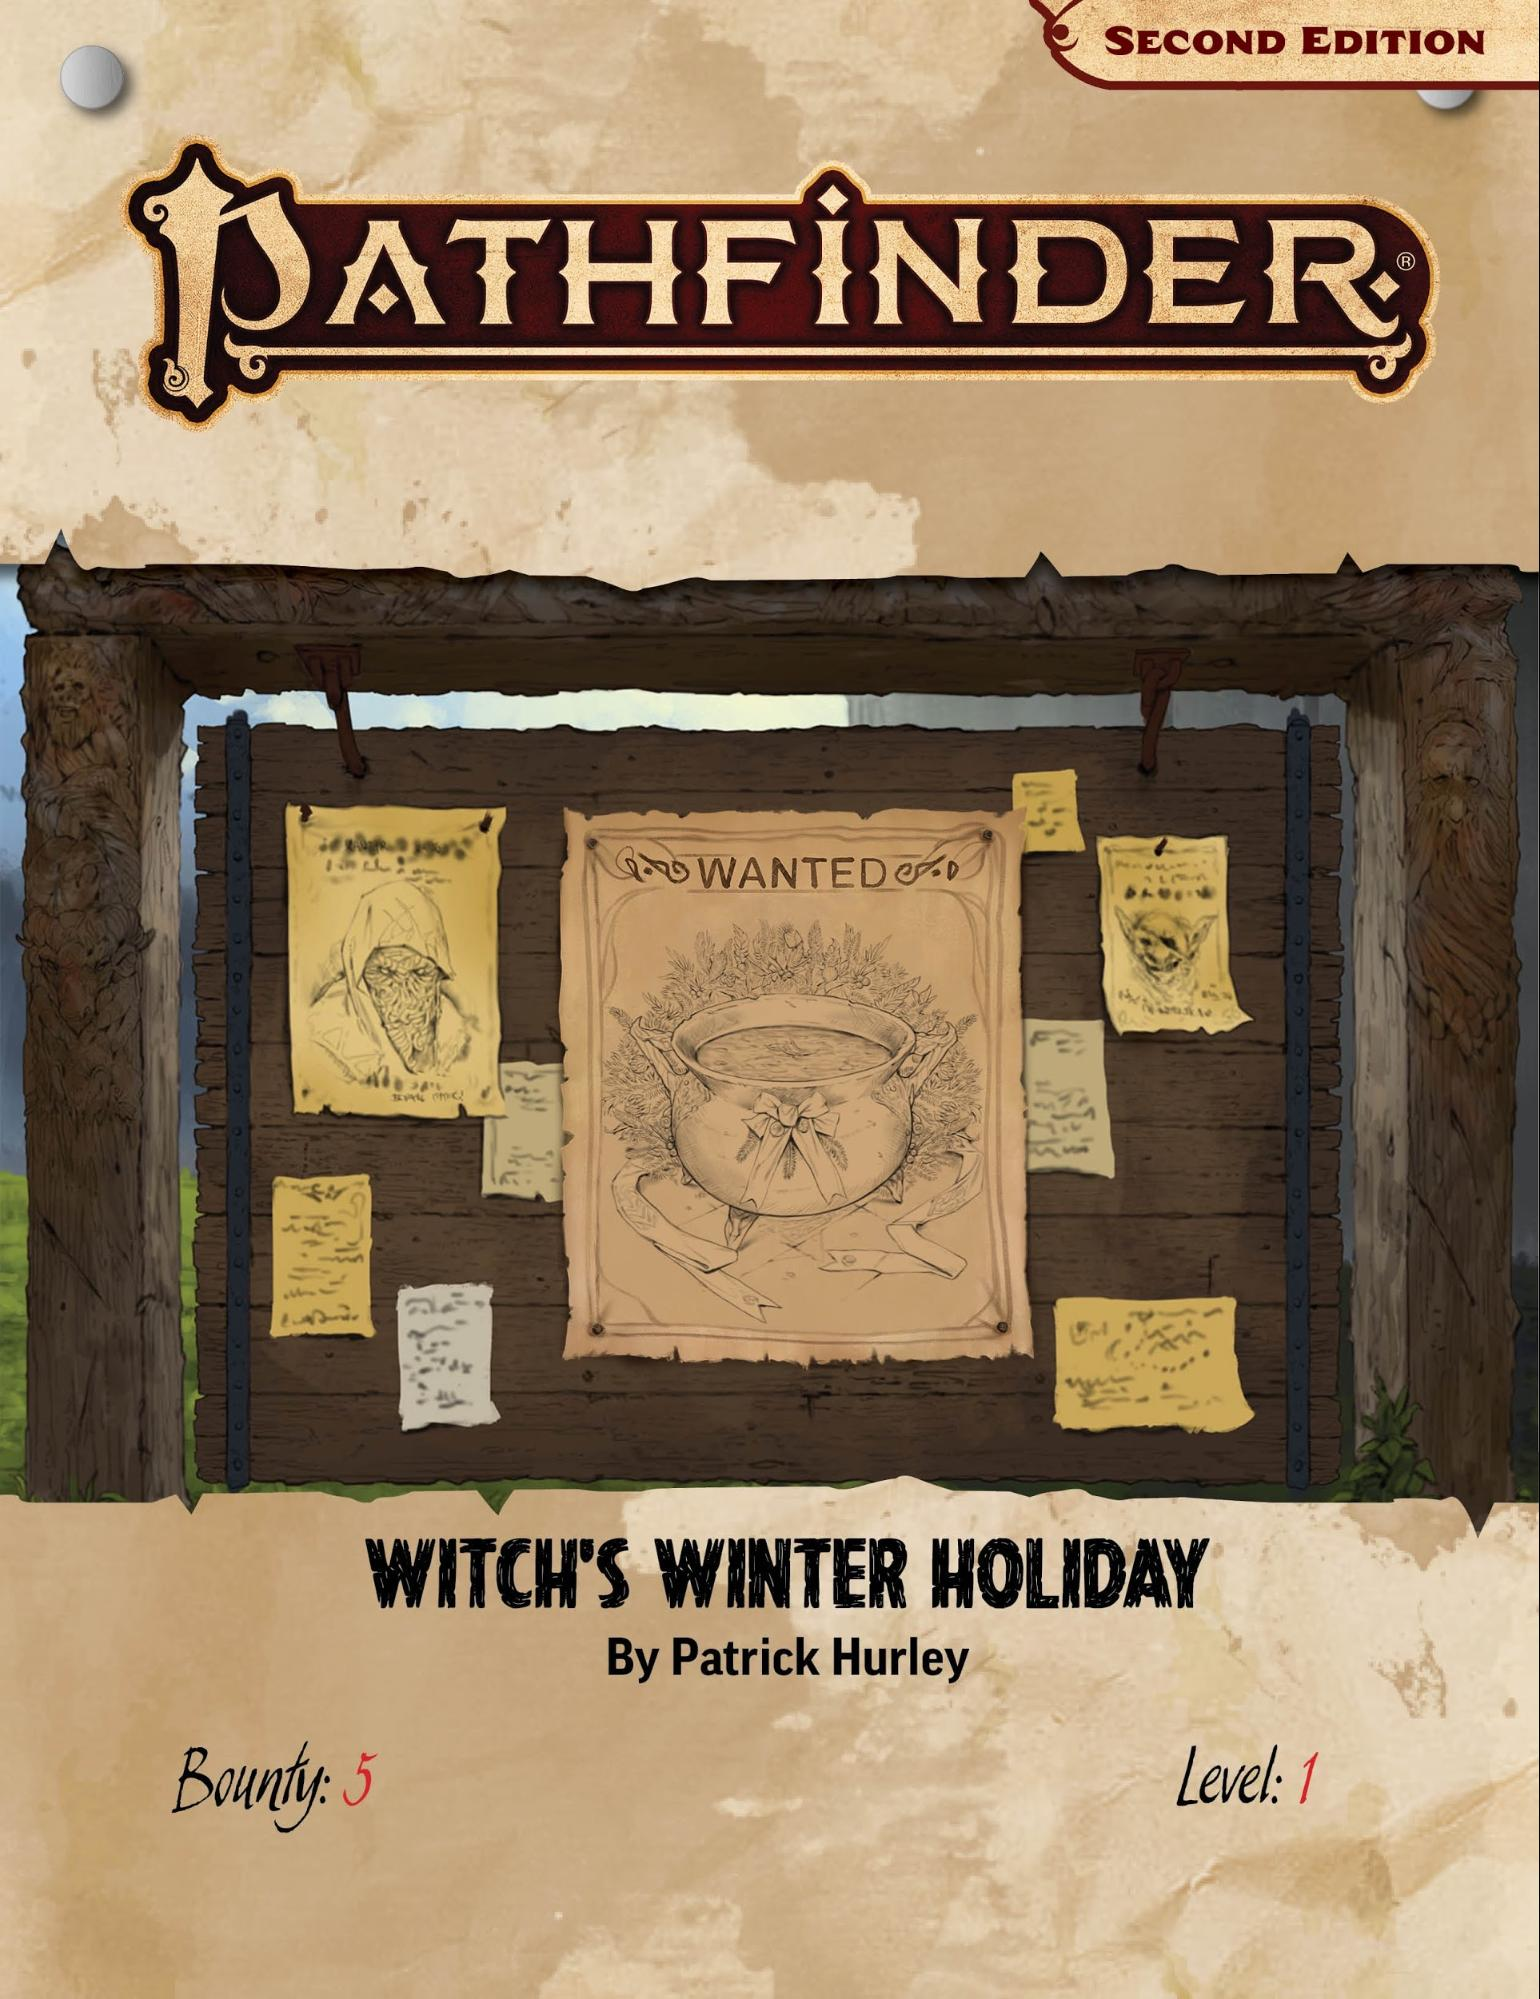 Pathfinder Bounty Witch's Winter Holiday: A wanted board with a poster of a witches cauldron